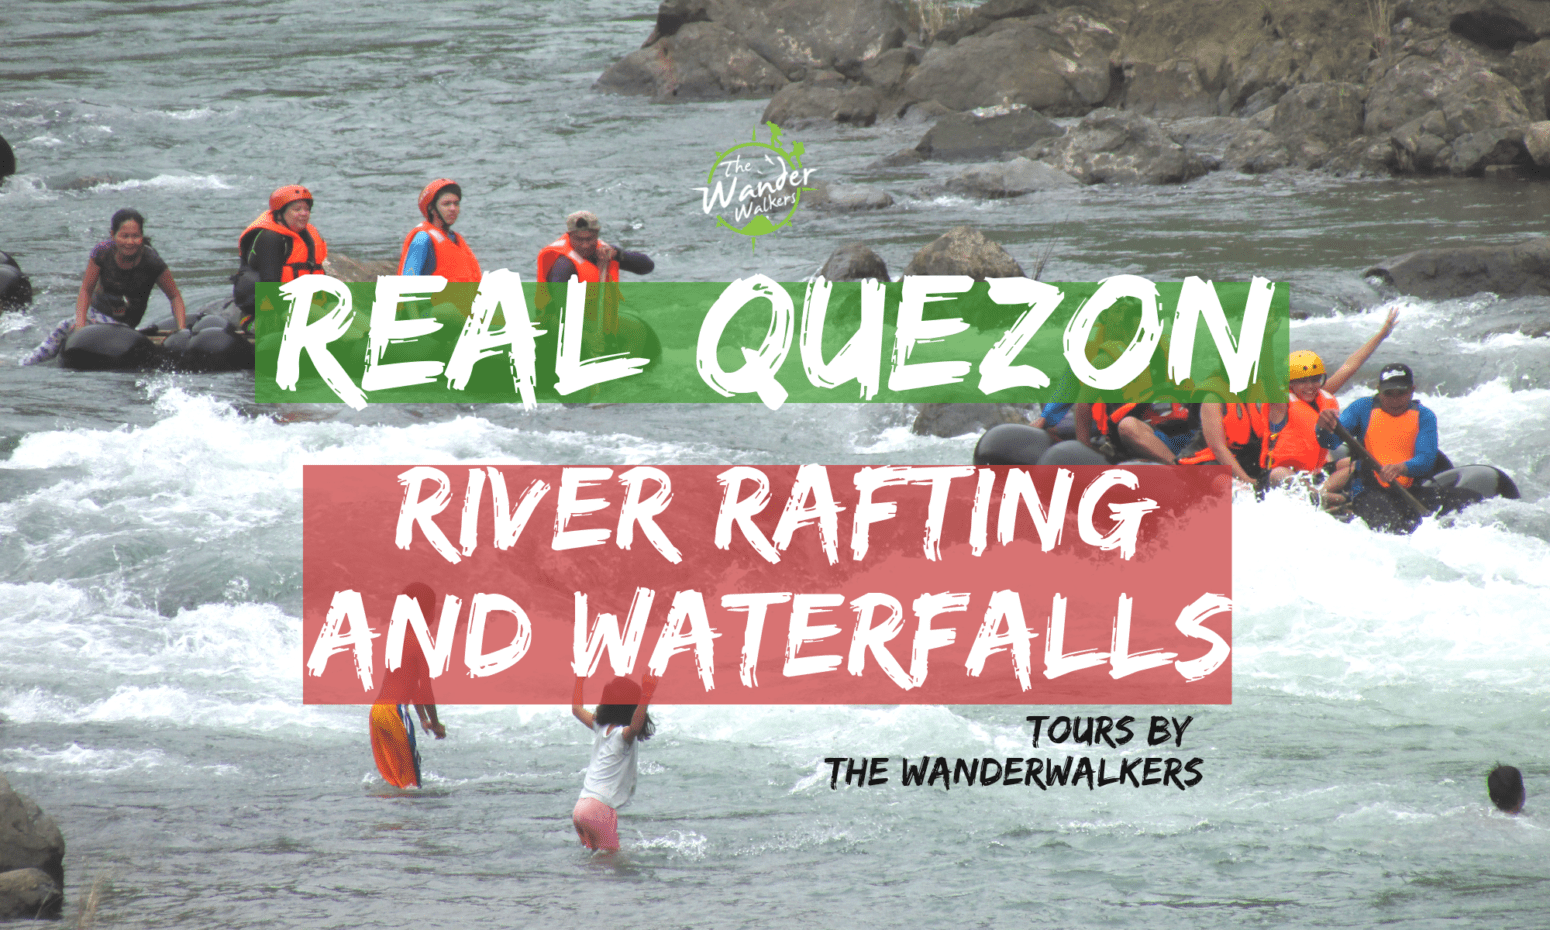 Real Quezon River Rafting